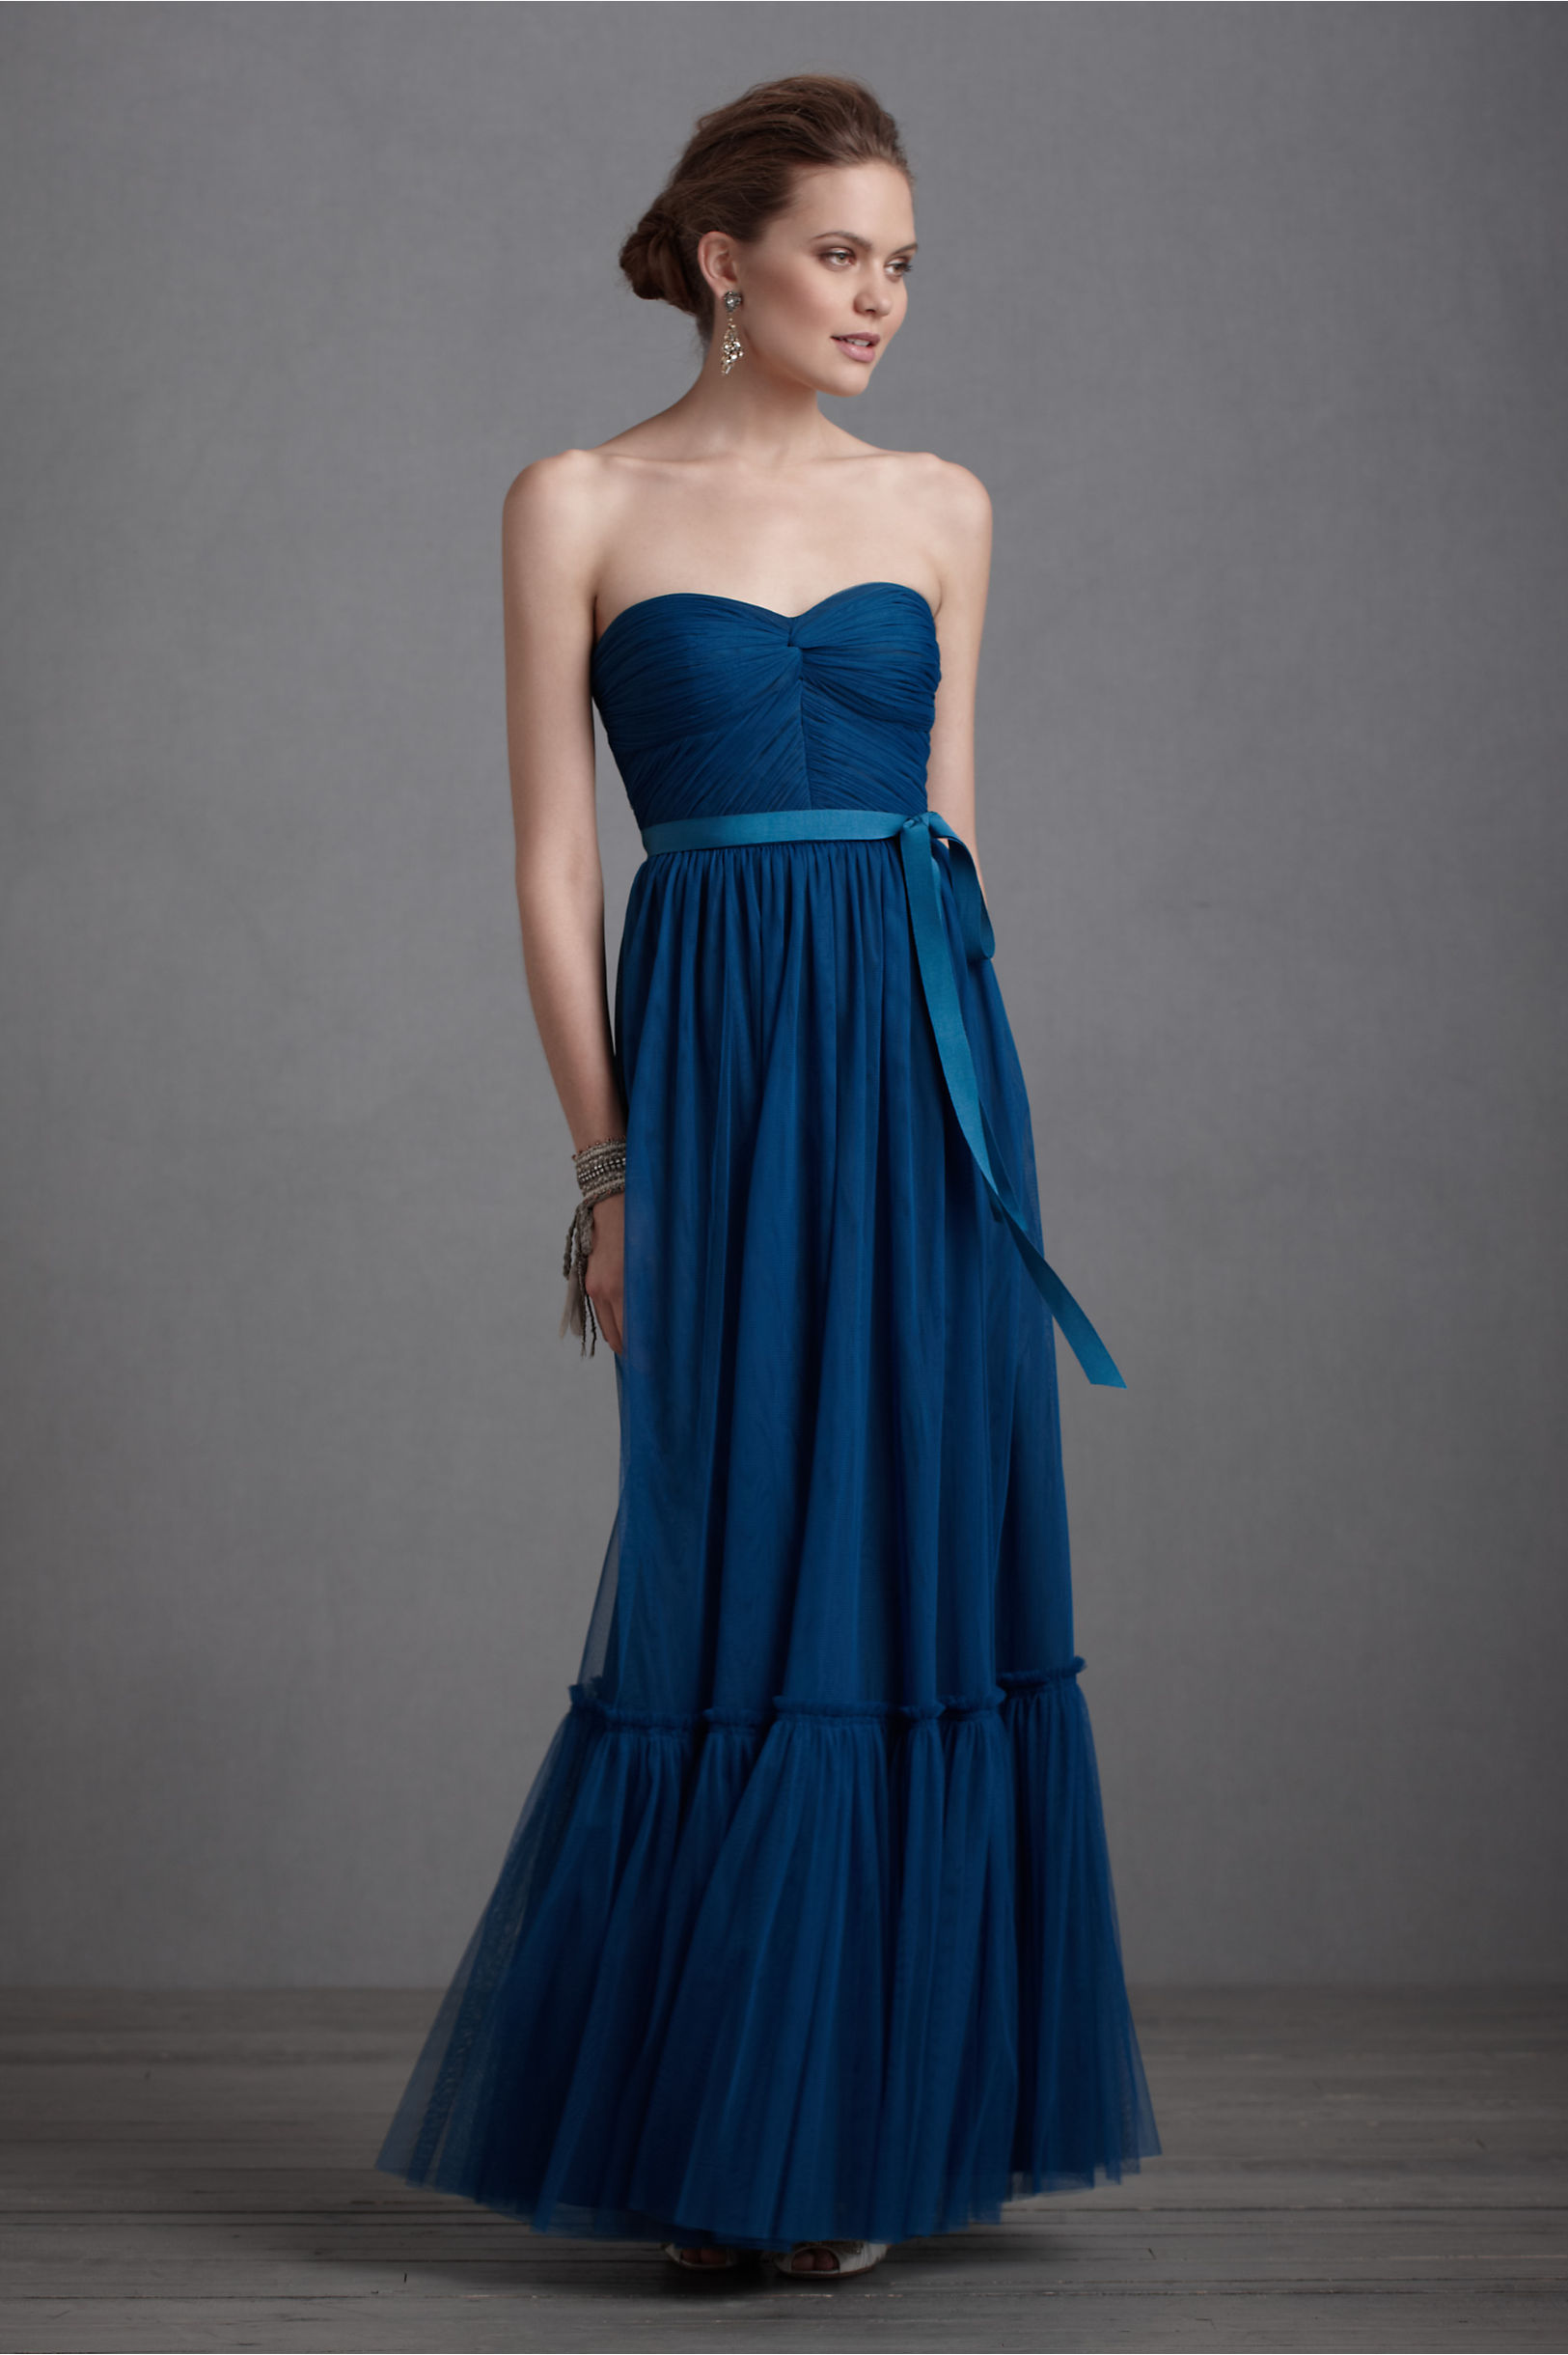 Long dresses navy blue fashions dresses for Navy blue dresses for wedding